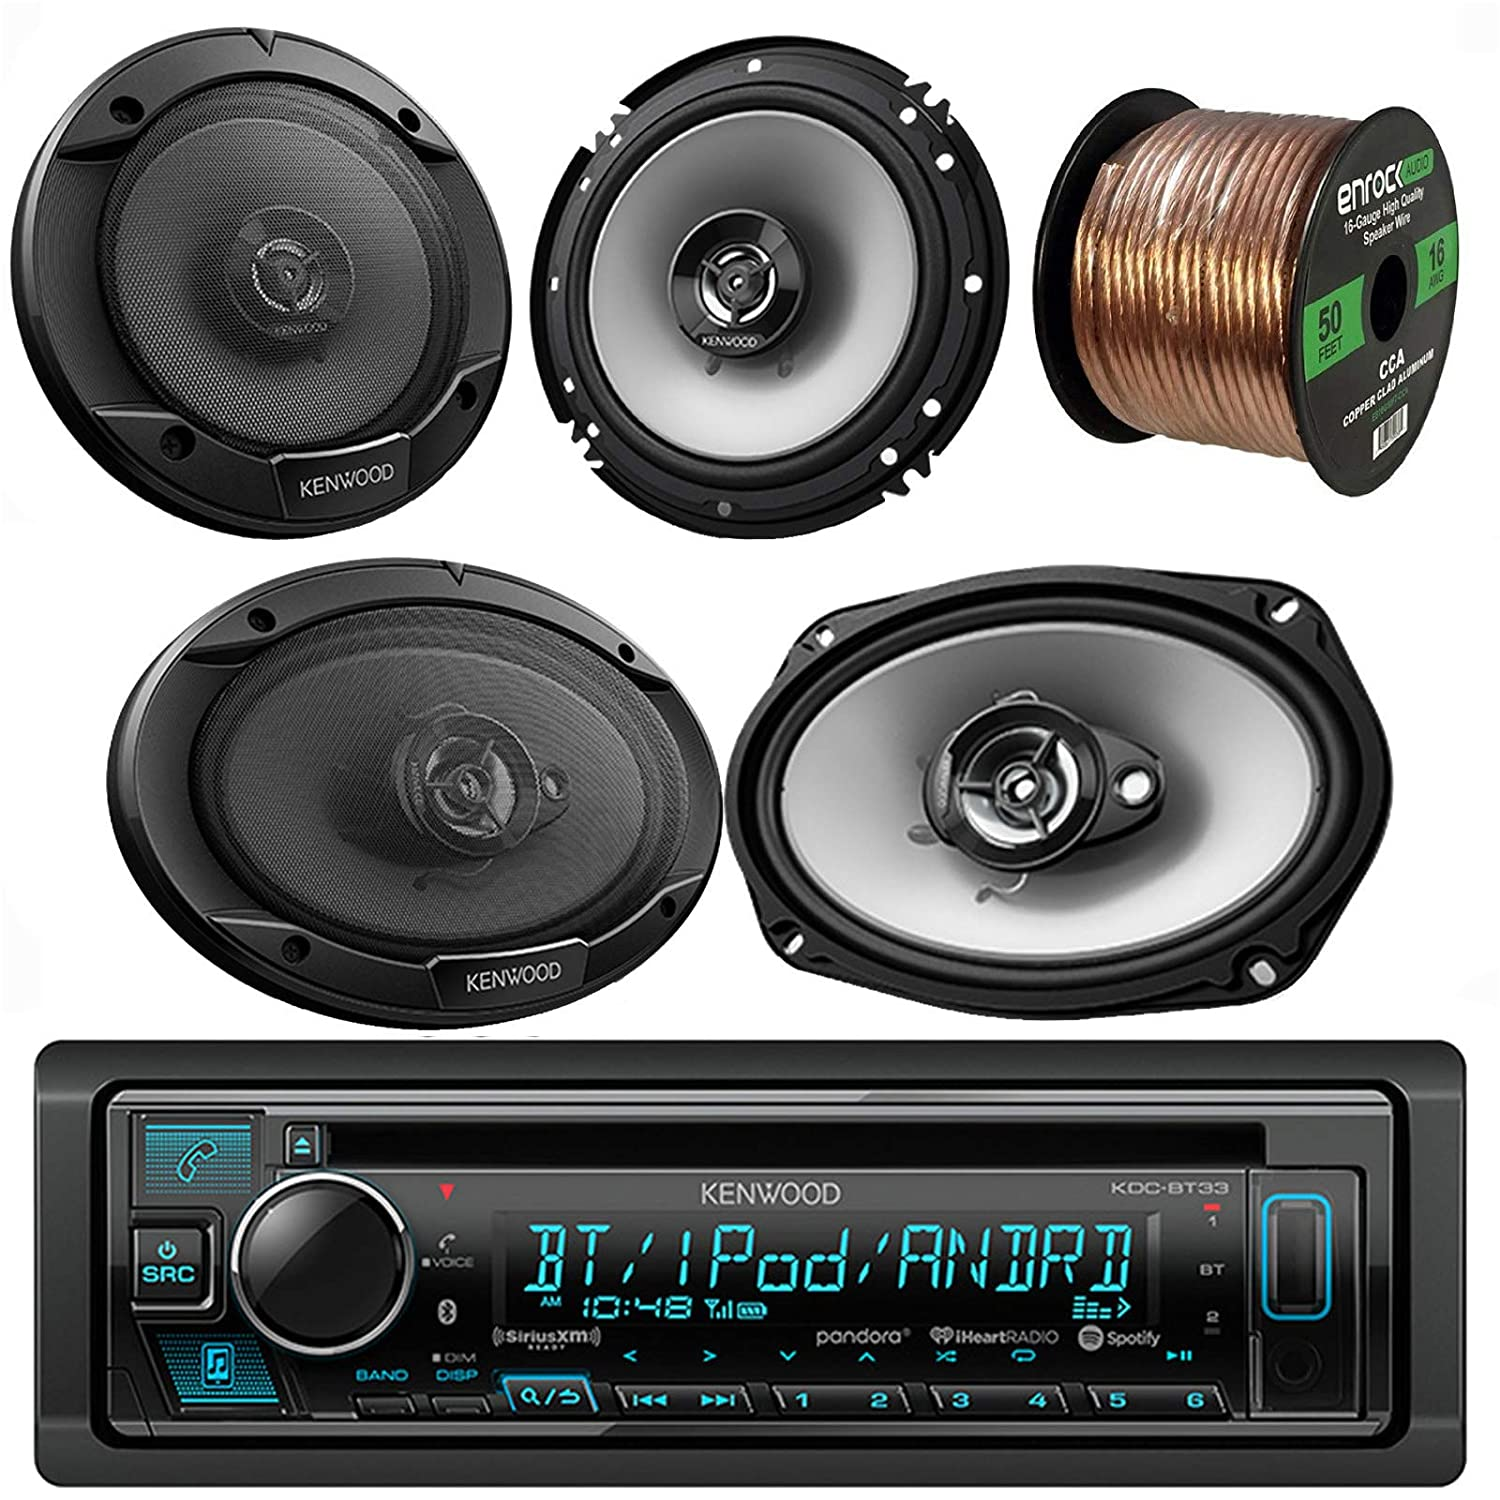 Kenwood Receiver With Two 6x9-Inch Speakers, Two 6.5-Inch Speakers, and Speaker Wire}